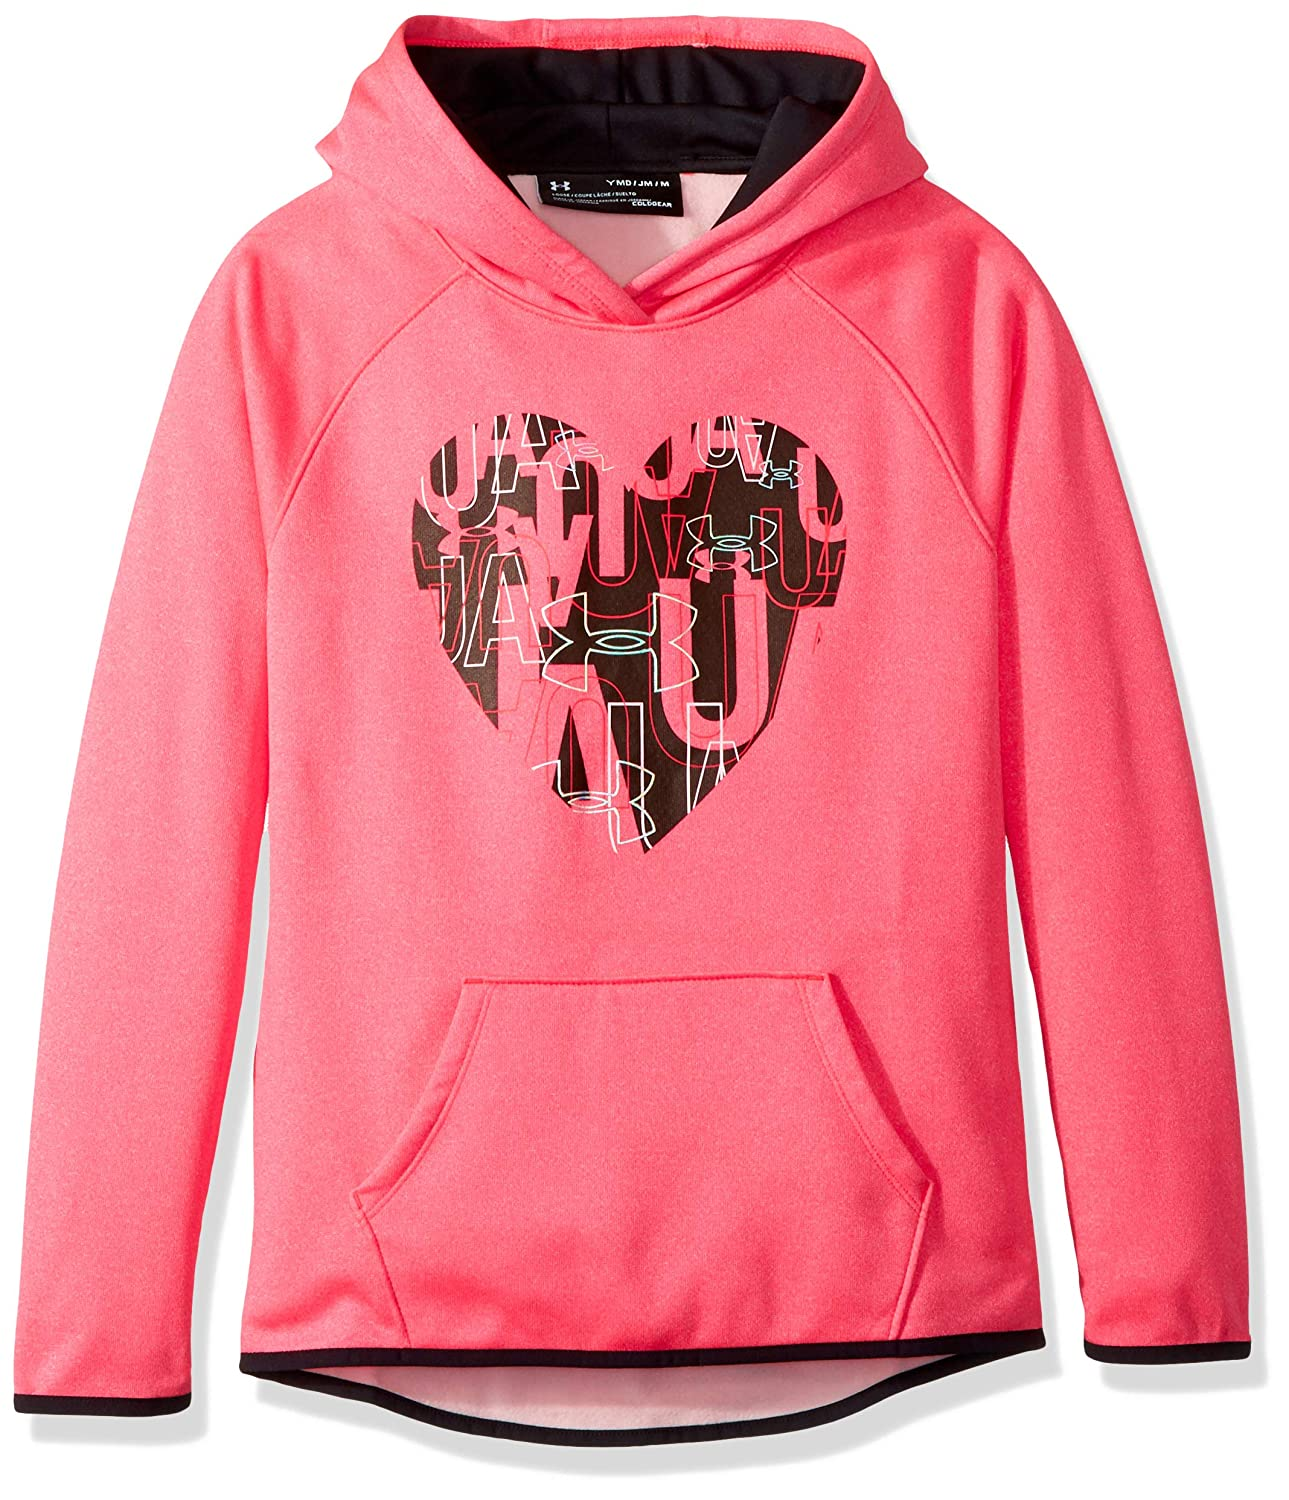 Under Armour Girls armourfleece Hoody Heart Icon, Penta Pink Light HEA (975)/Black, Youth Under Armour Apparel 1317834